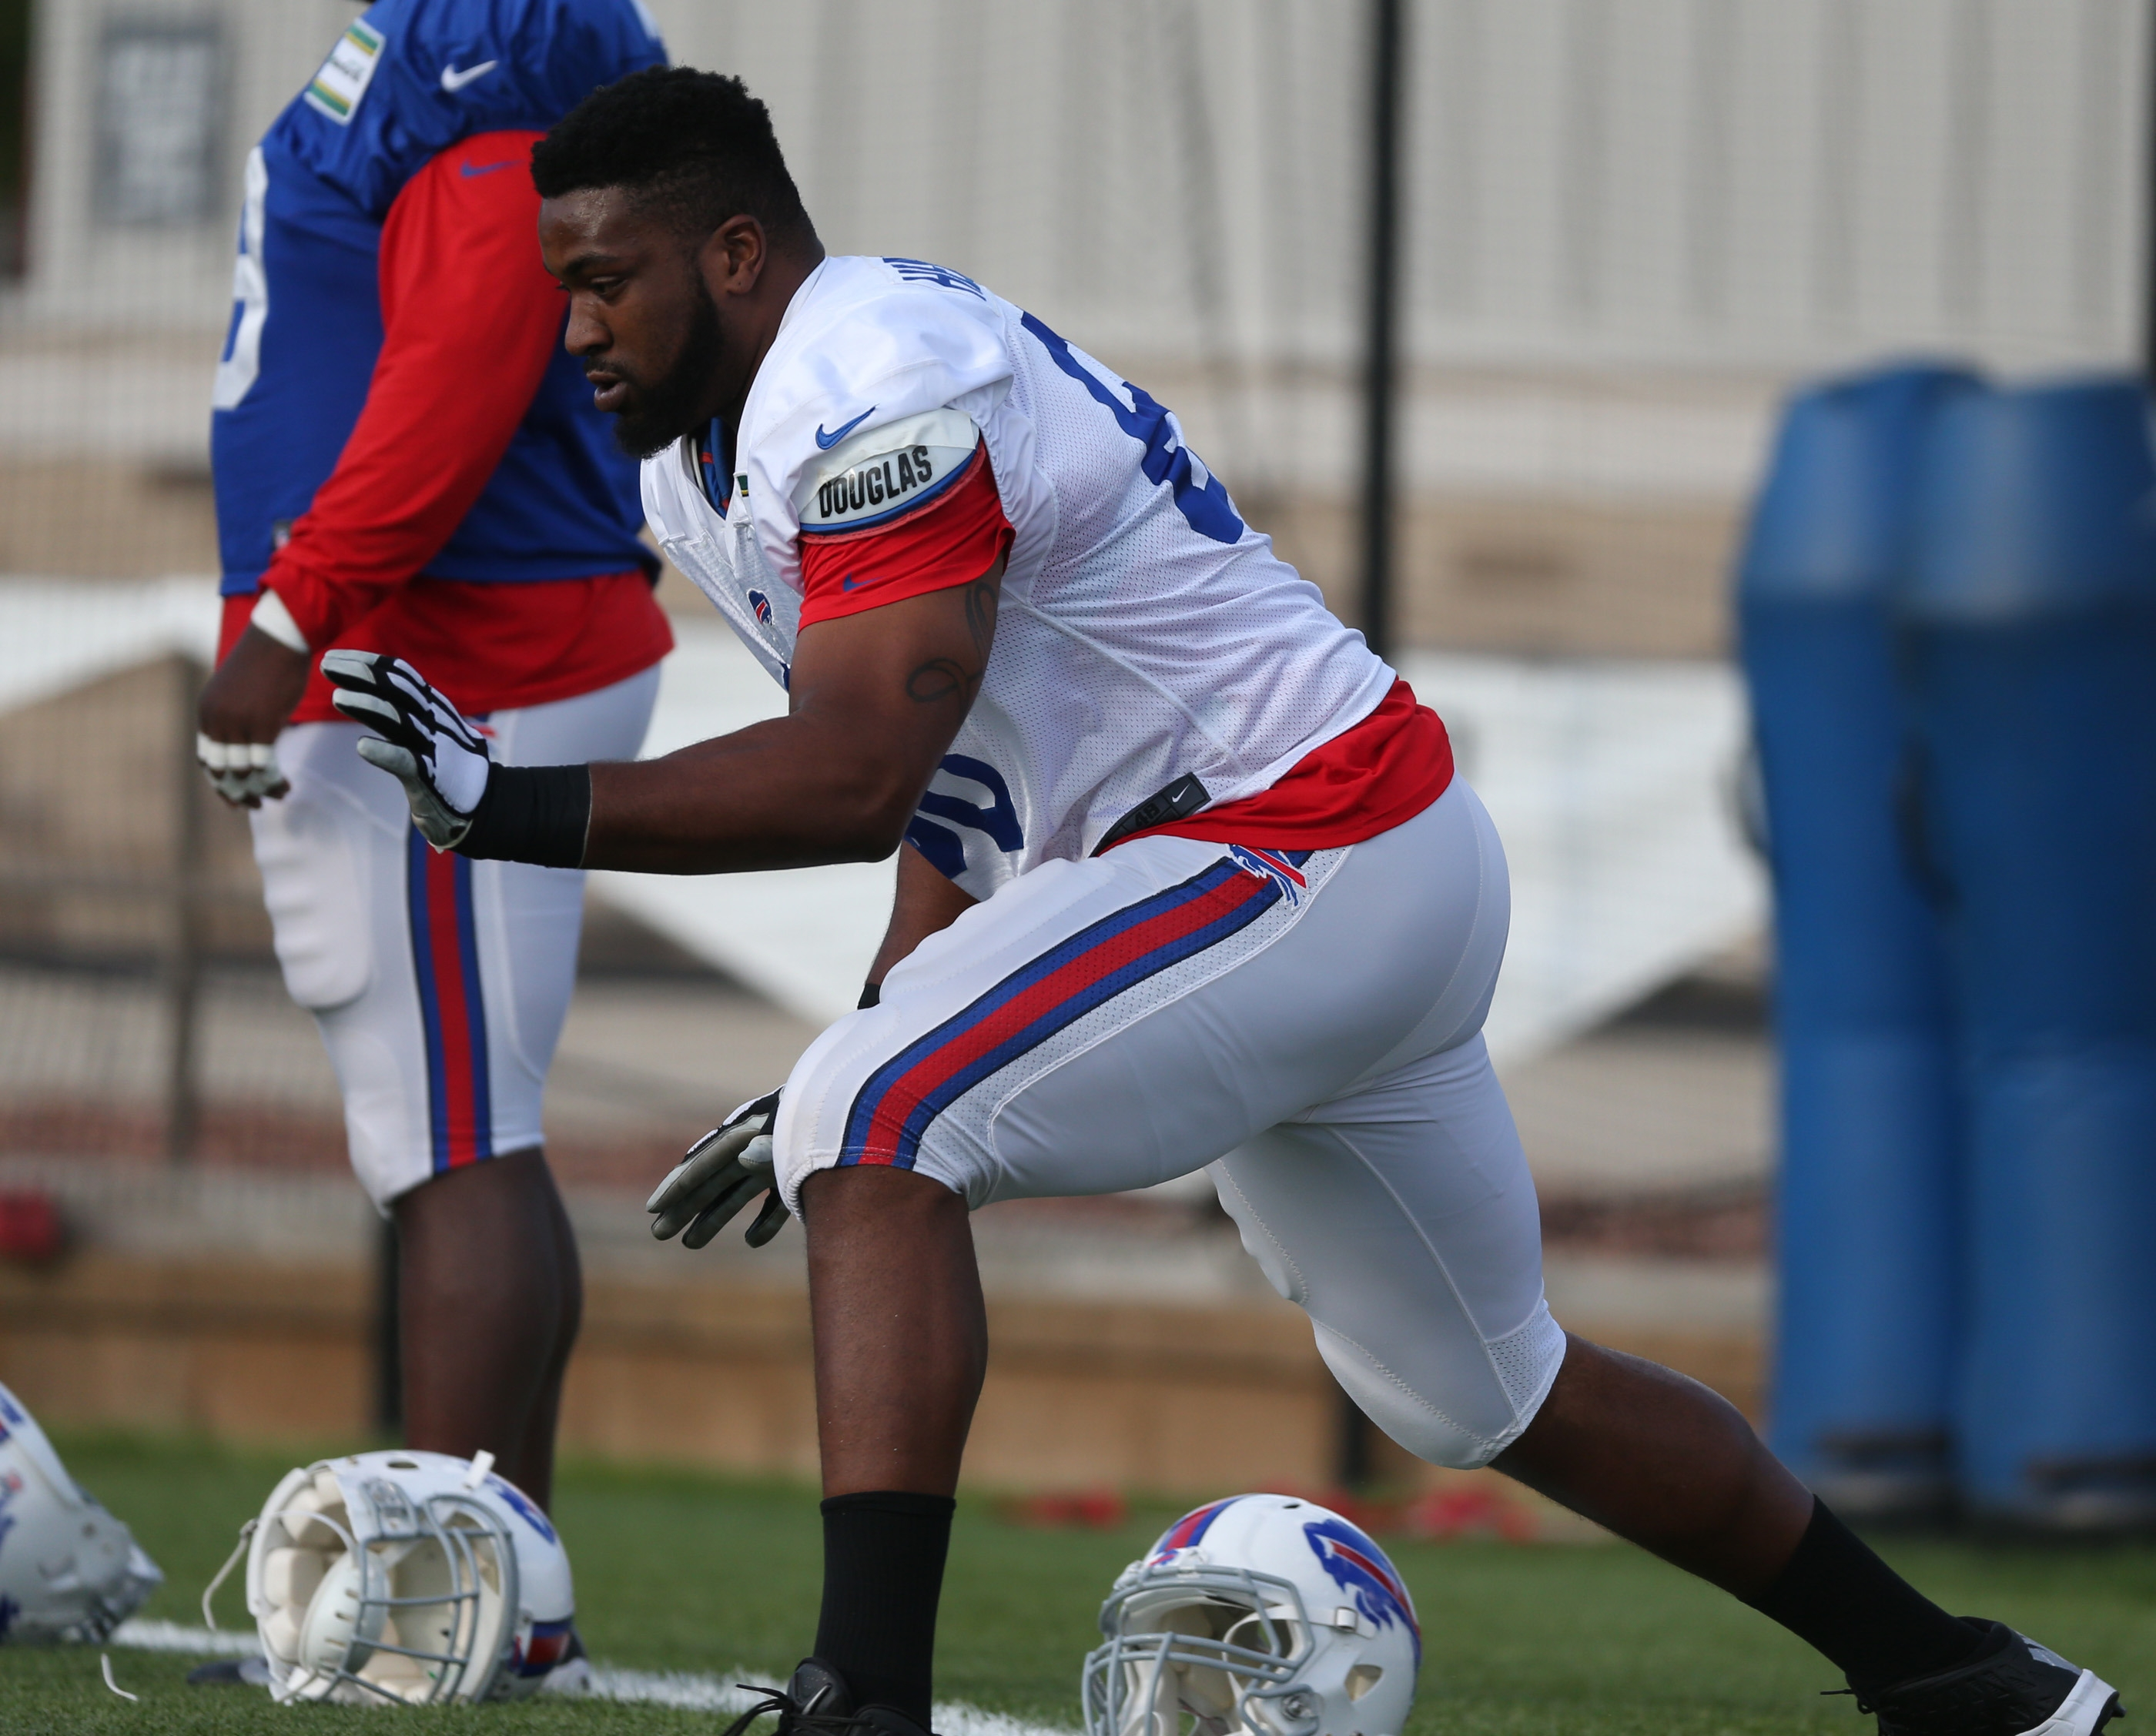 Buffalo Bills tackle Seantrel Henderson (66) returned to practice for the first time at St. John Fisher College in Pittsford,NY on Monday, Aug. 22, 2016.  (James P. McCoy/ Buffalo News)